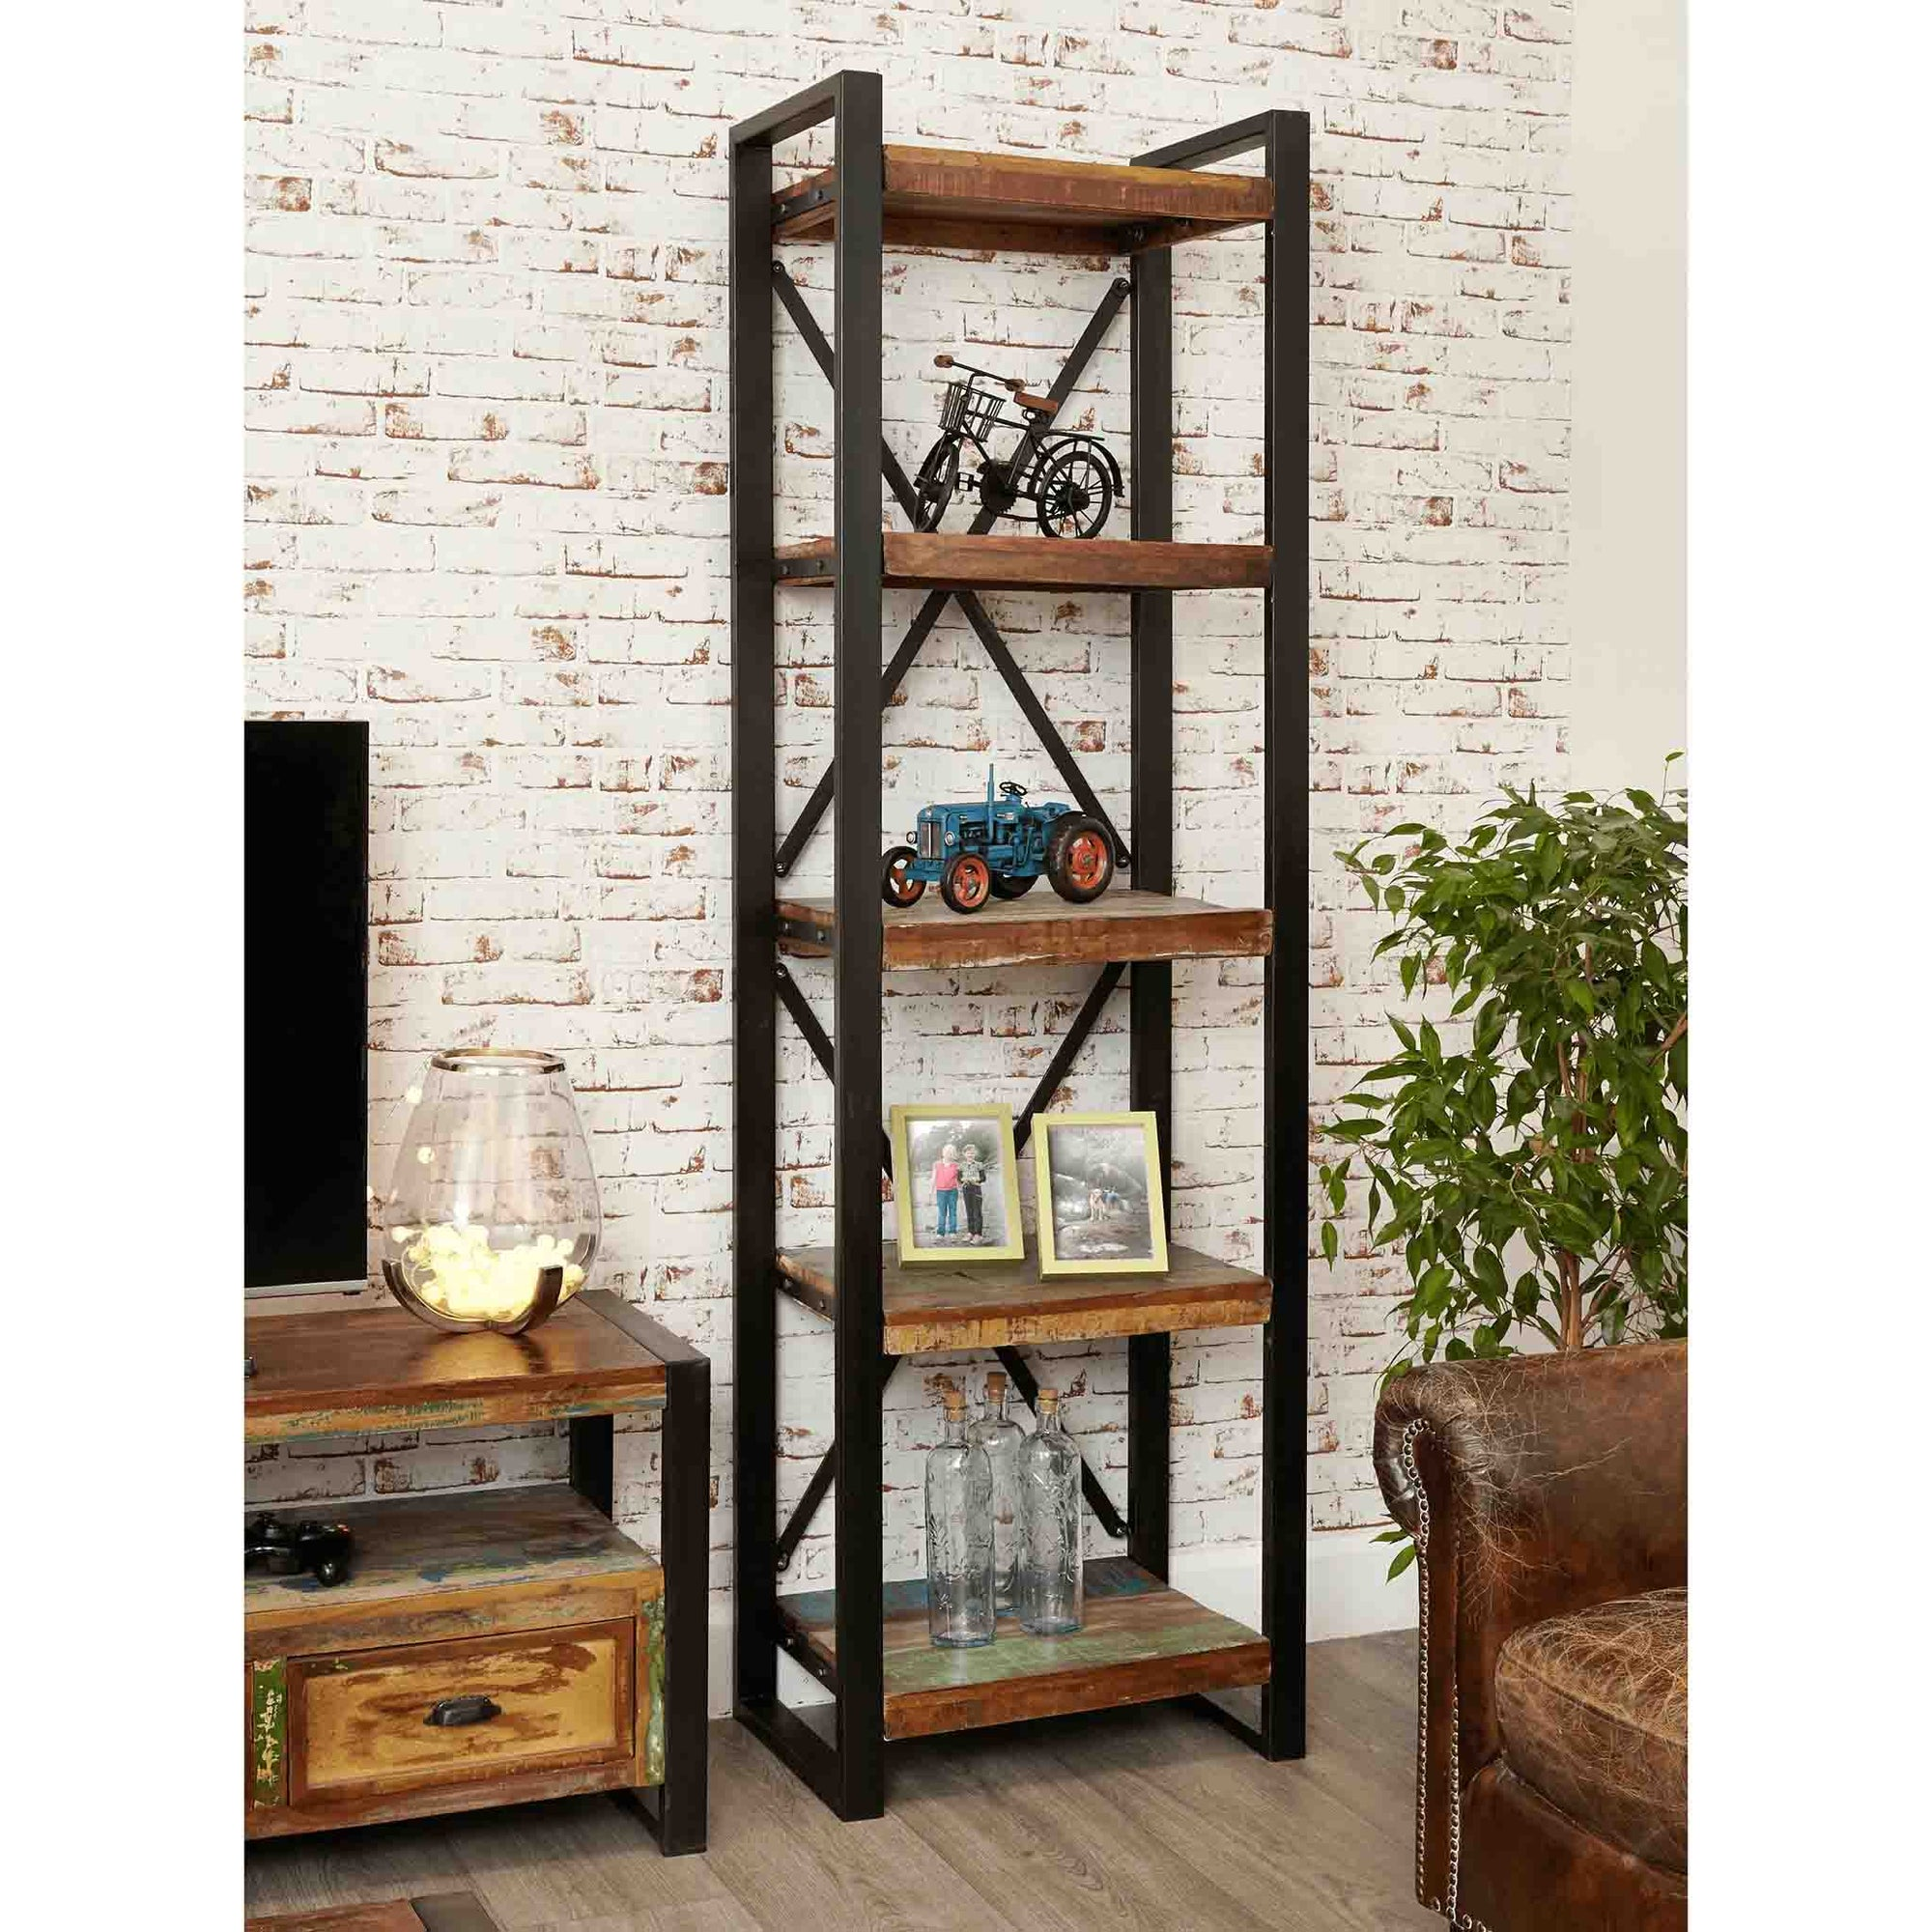 The Urban Chic Tall Industrial Reclaimed Wood Bookcase with 5 Shelves from Roseland Furniture